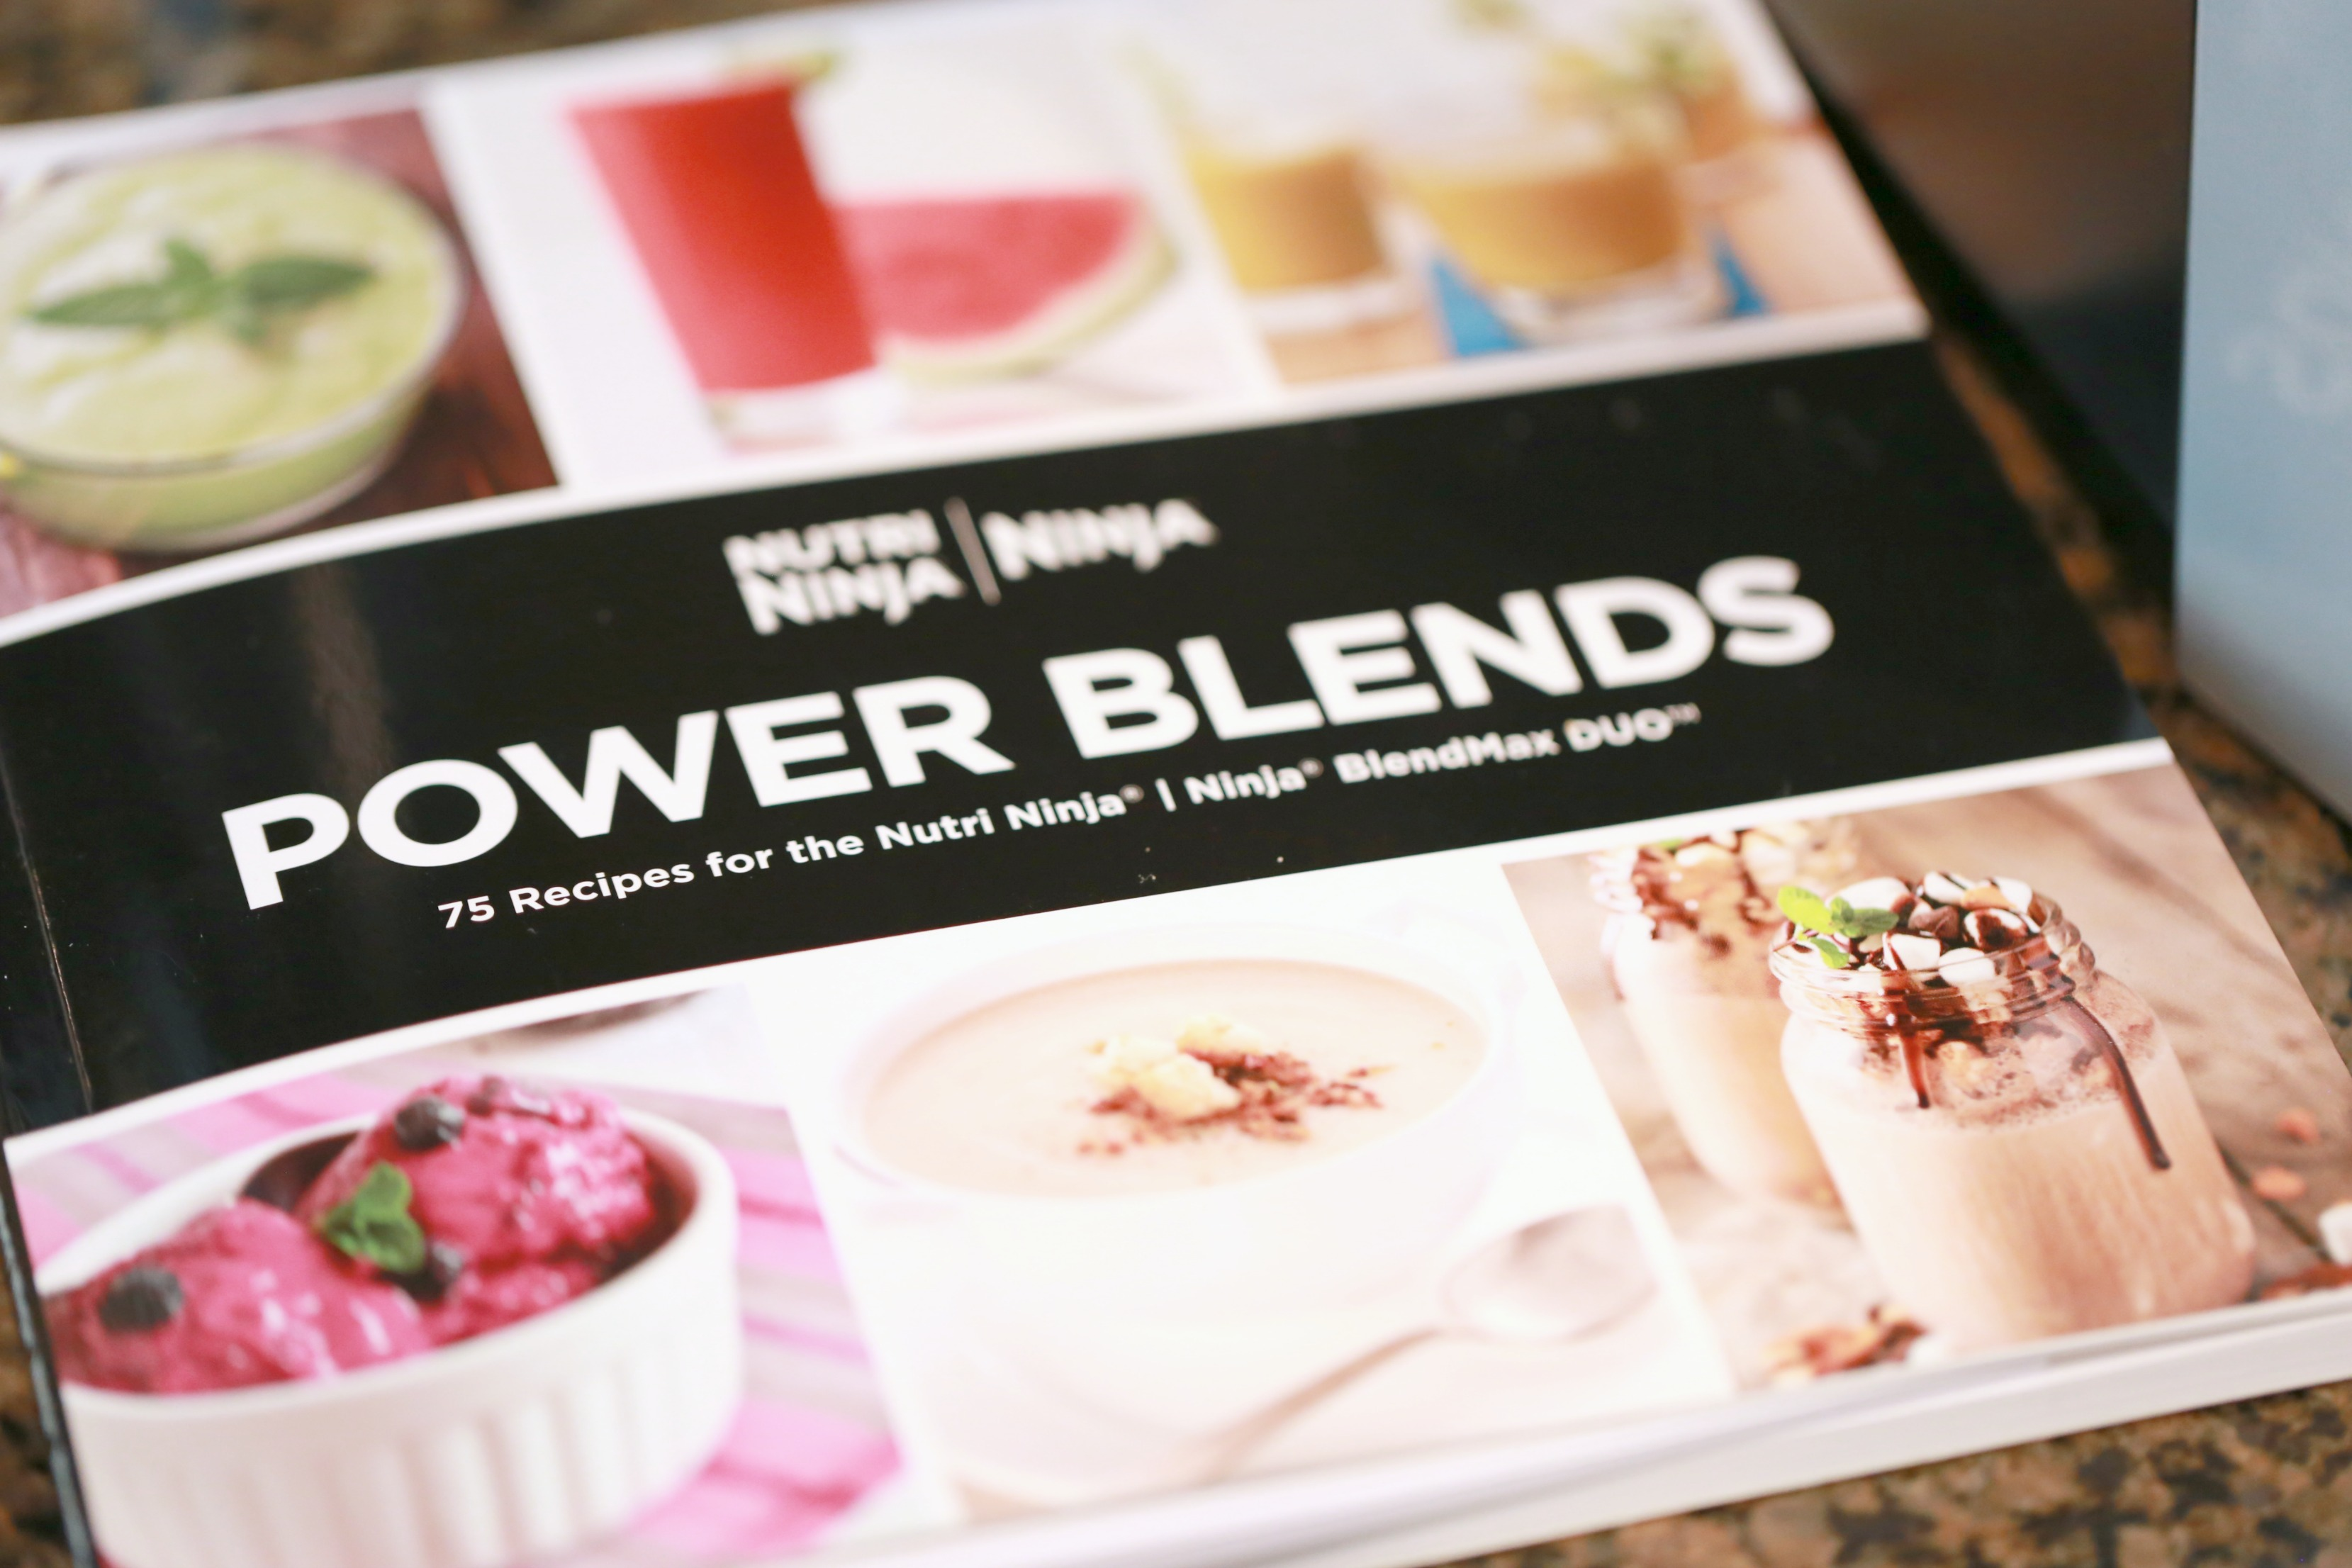 I was so excited to get a Ninja blender. See what I think about it in my Ninja BlendMax Duo review.